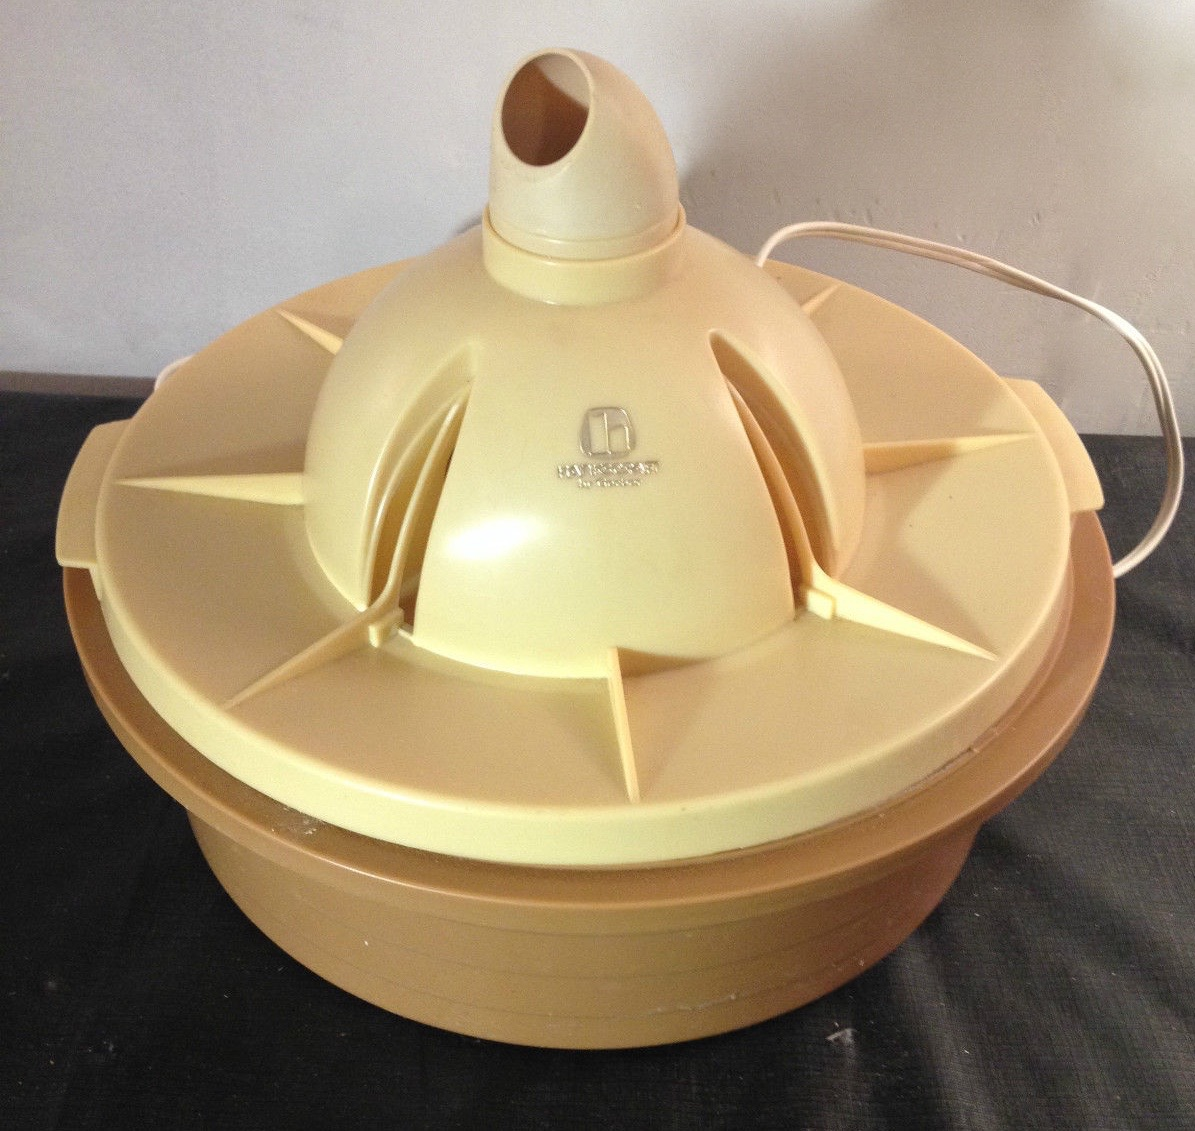 Hanskscraft  Humidifier